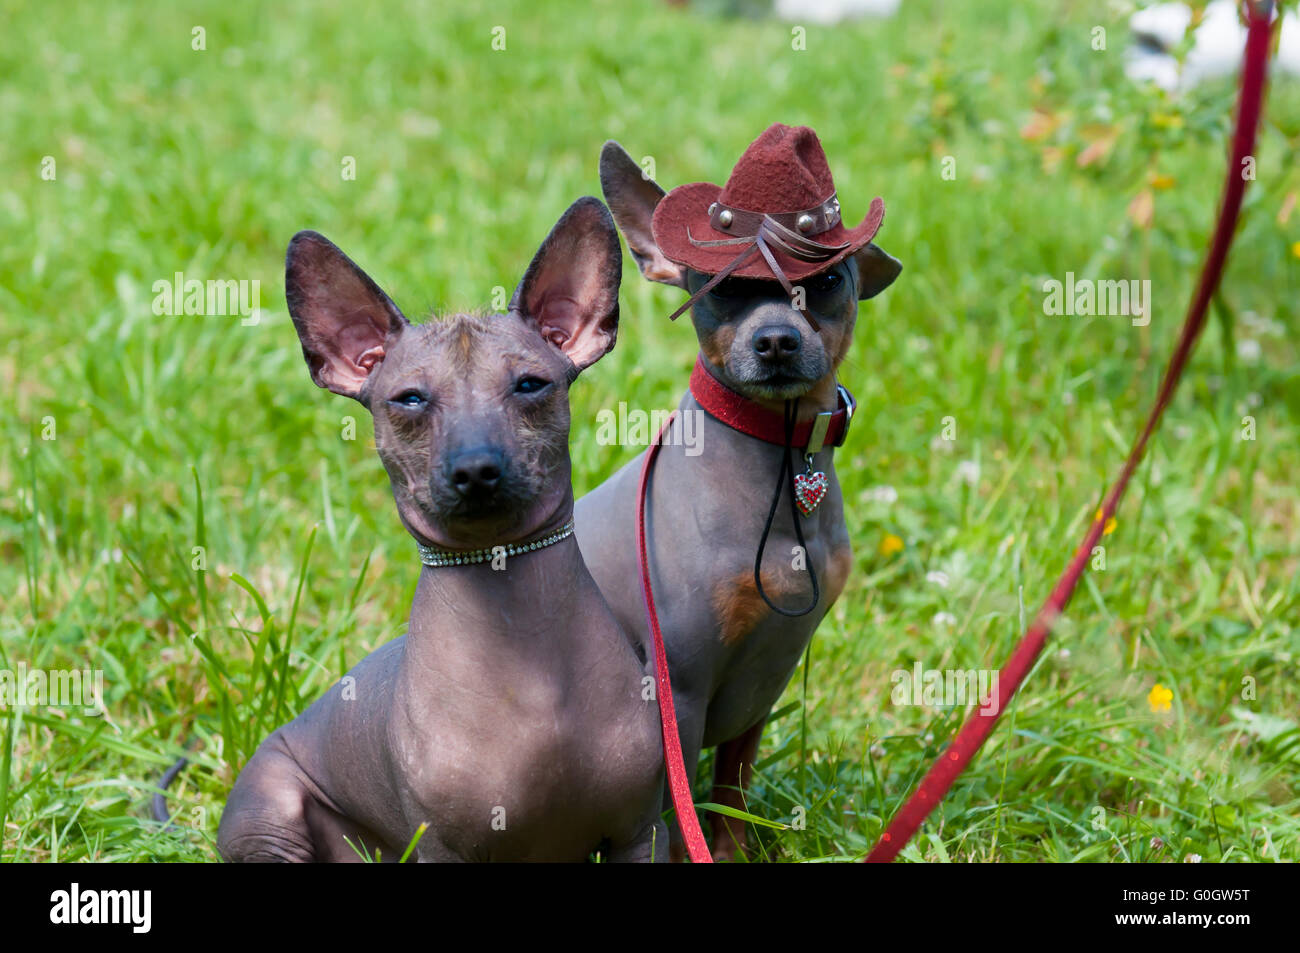 Mexican hairless dog - Stock Image